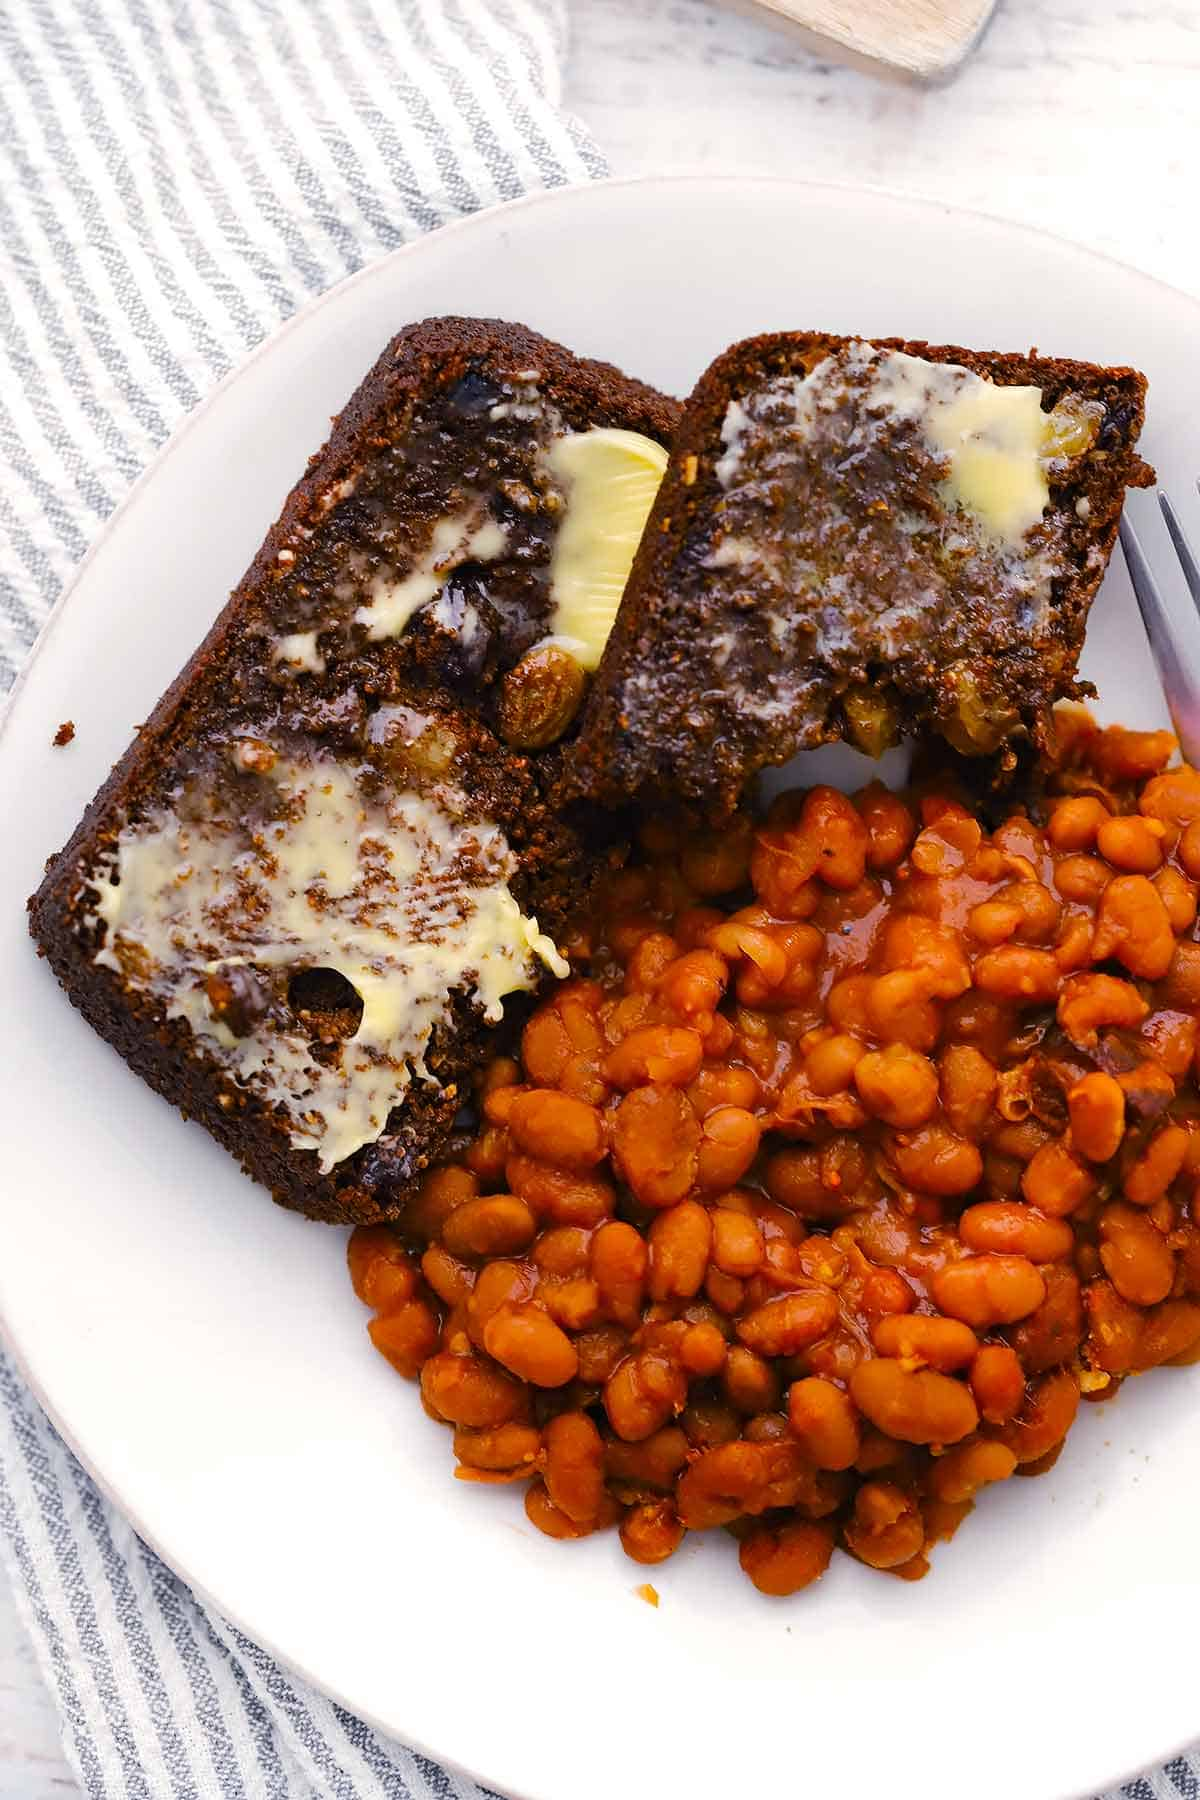 Overhead photo of two slices of brown bread and beans on a white plate.